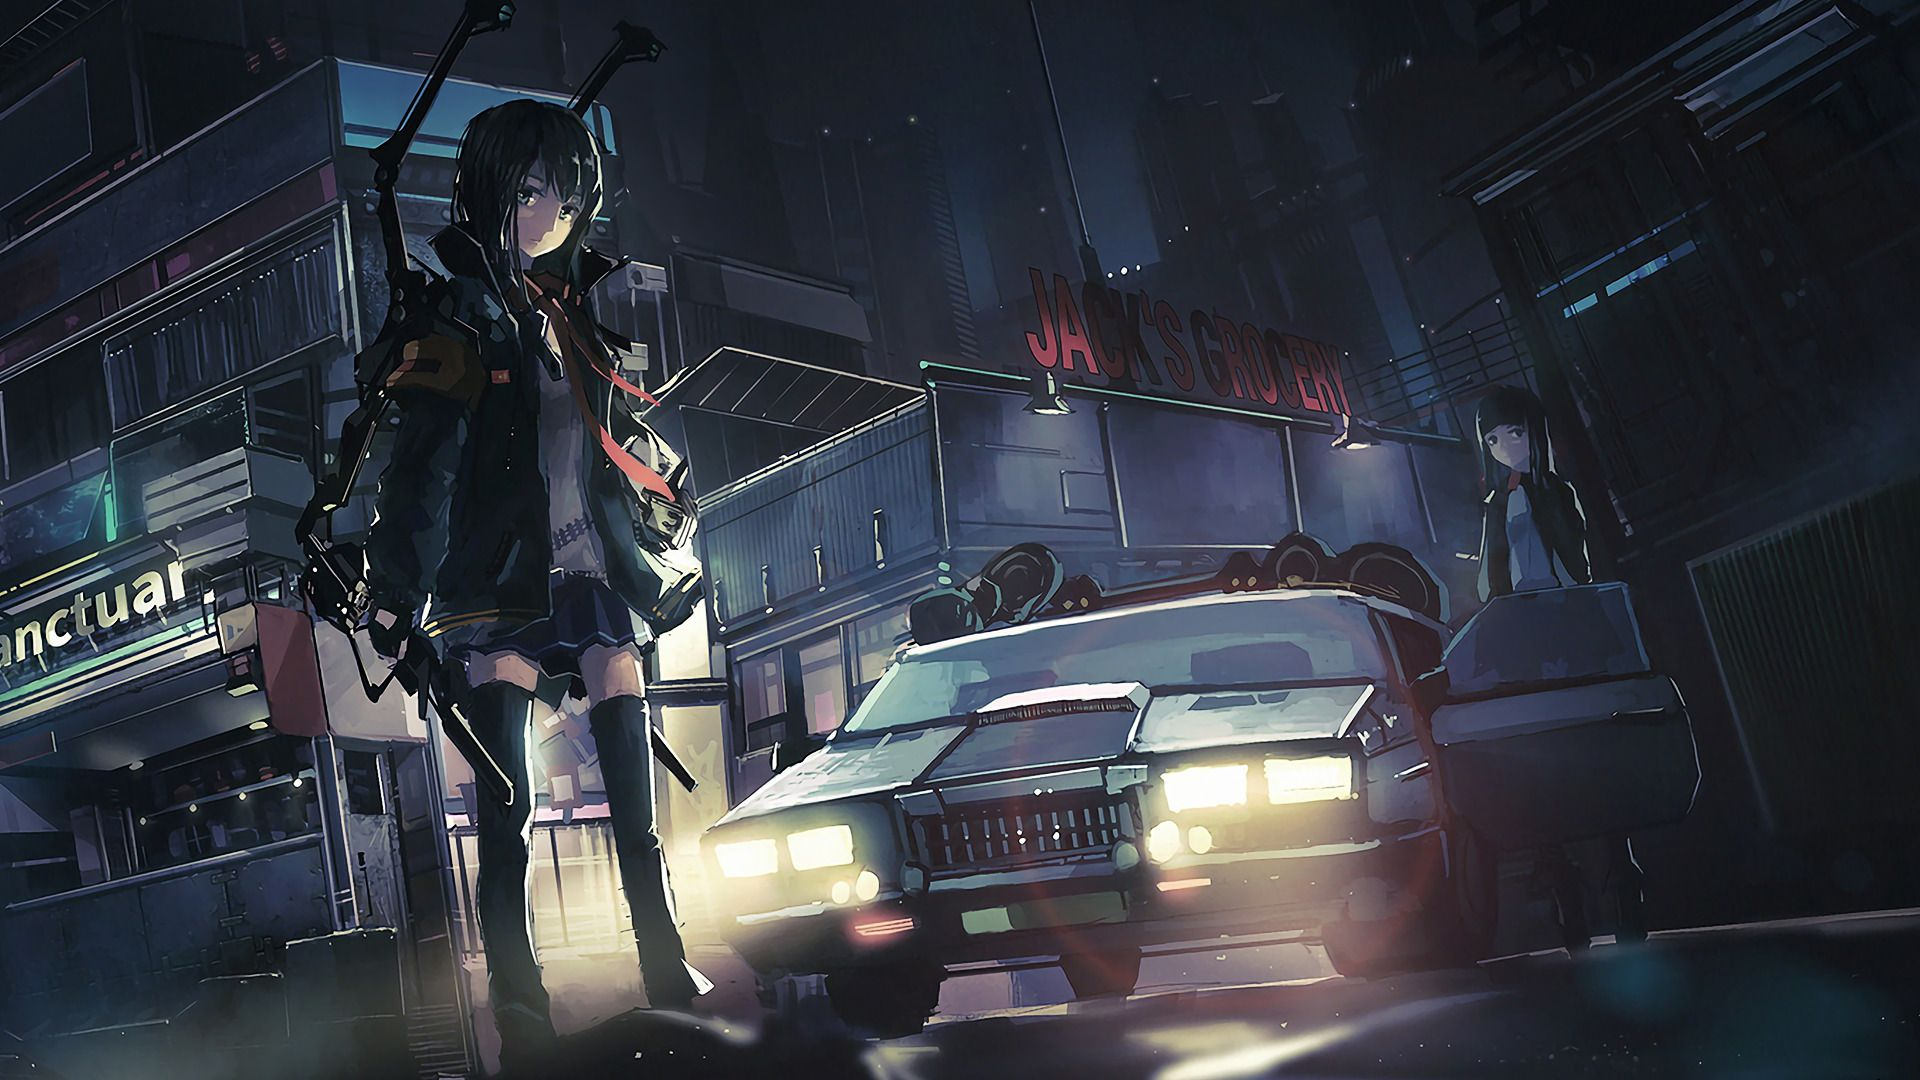 Car Anime Wallpapers   Top Car Anime Backgrounds 1920x1080